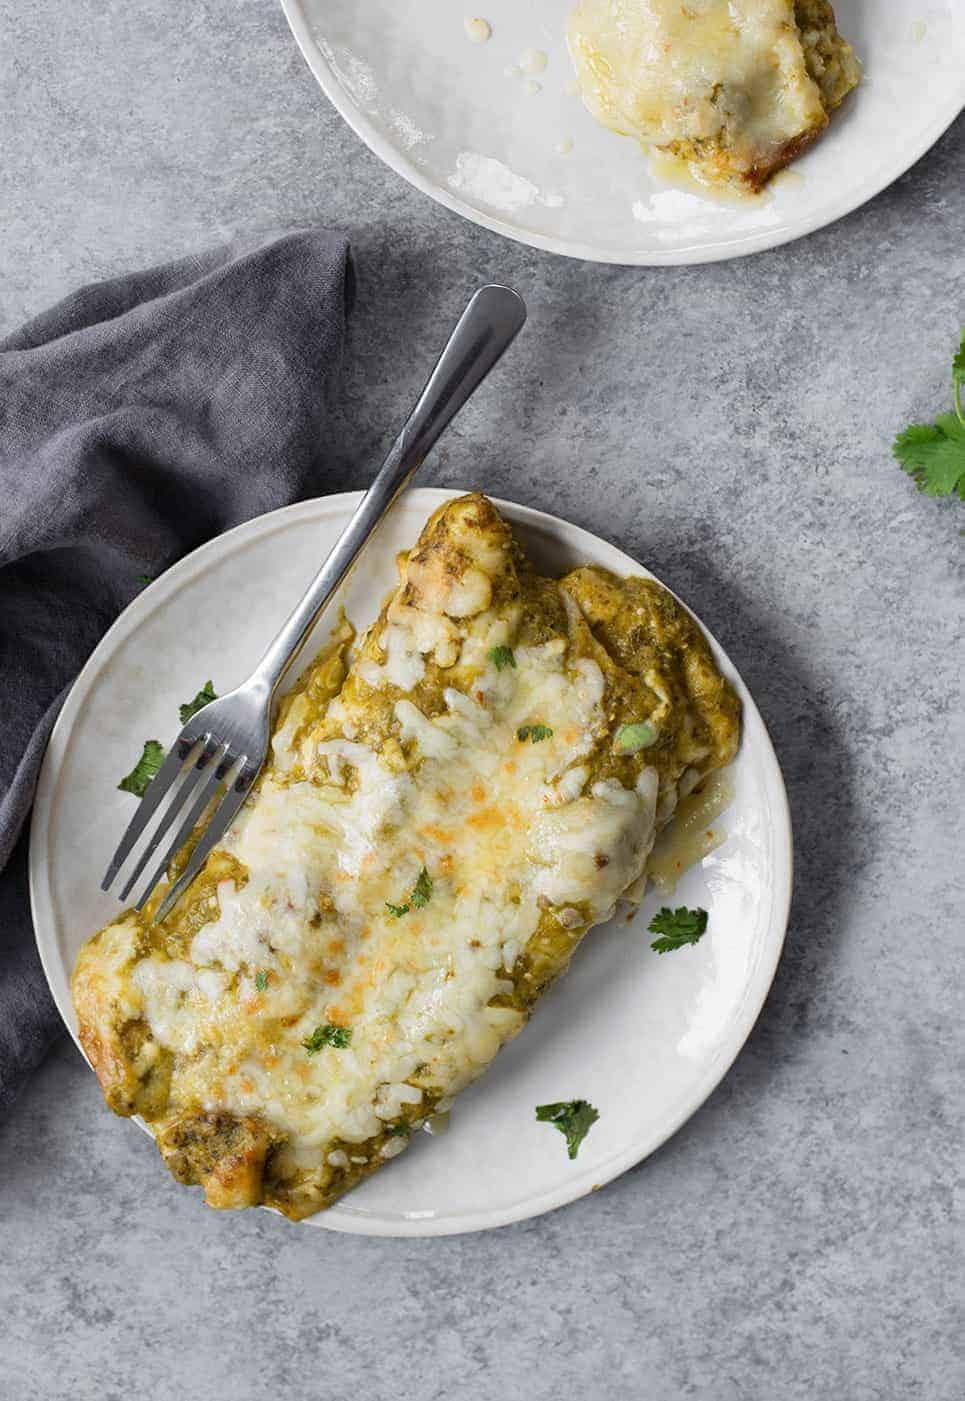 Enchiladas verdes with mushrooms, beans and spinach